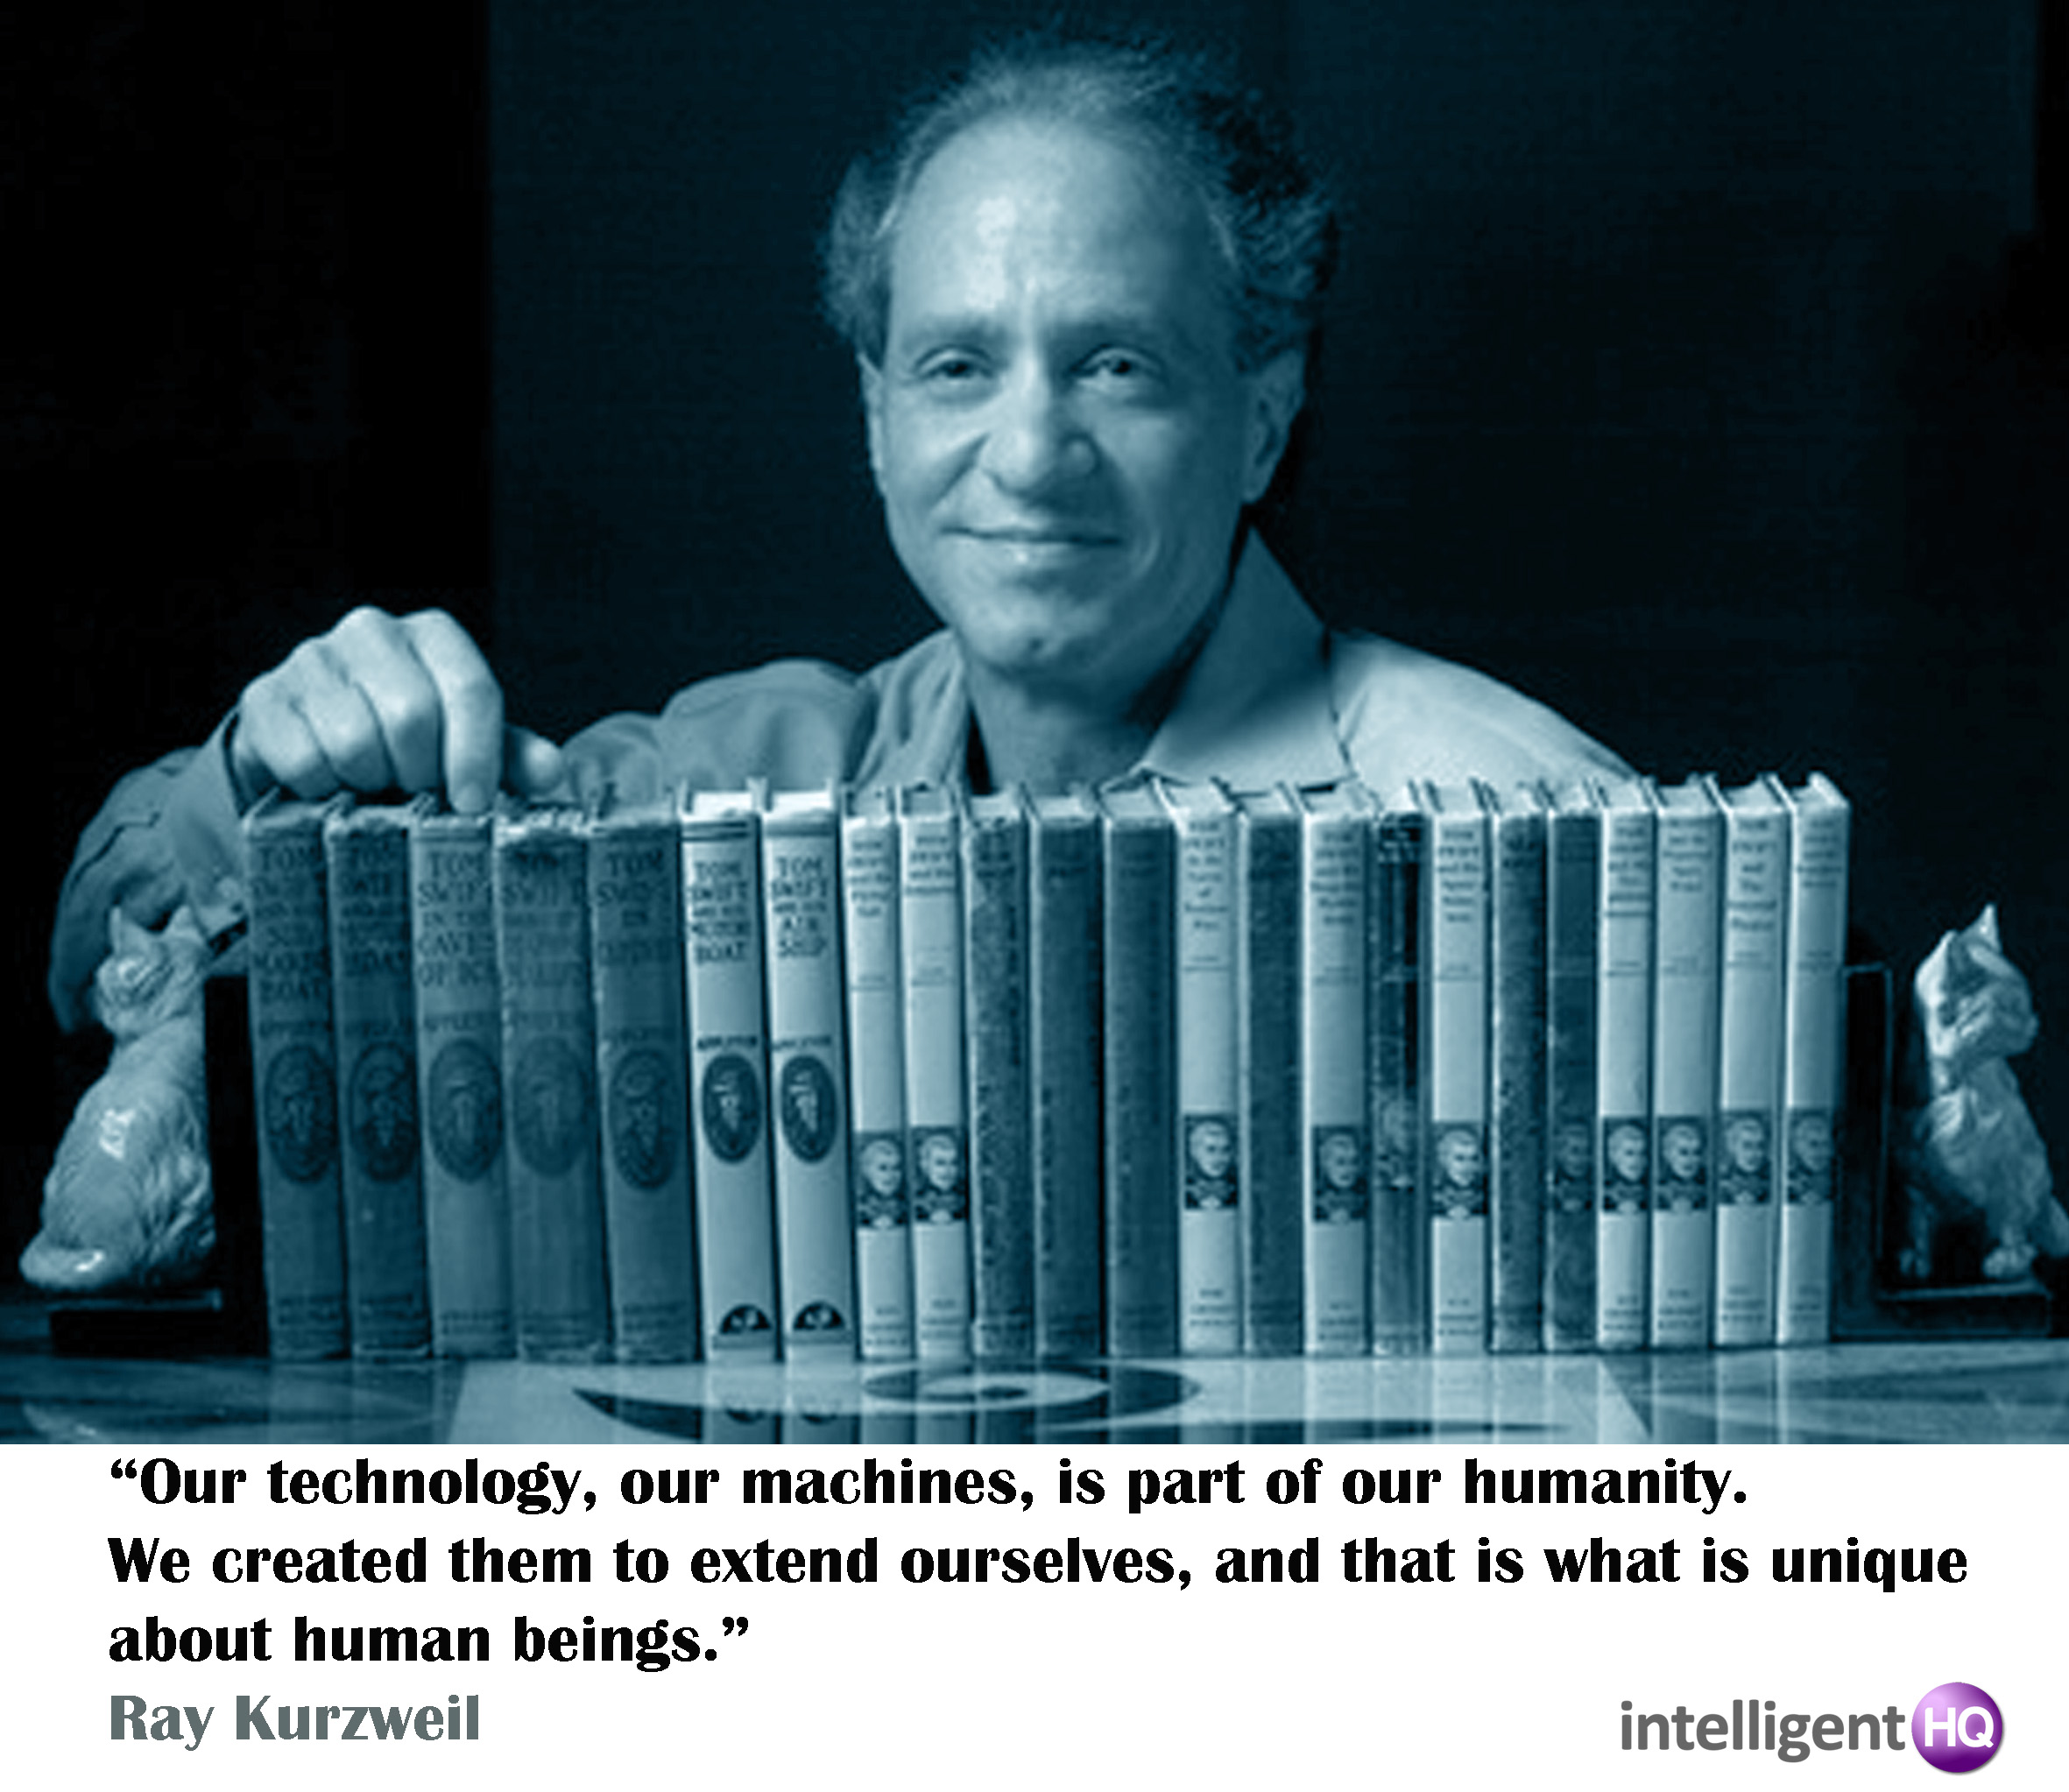 Quote by Ray Kurzweil